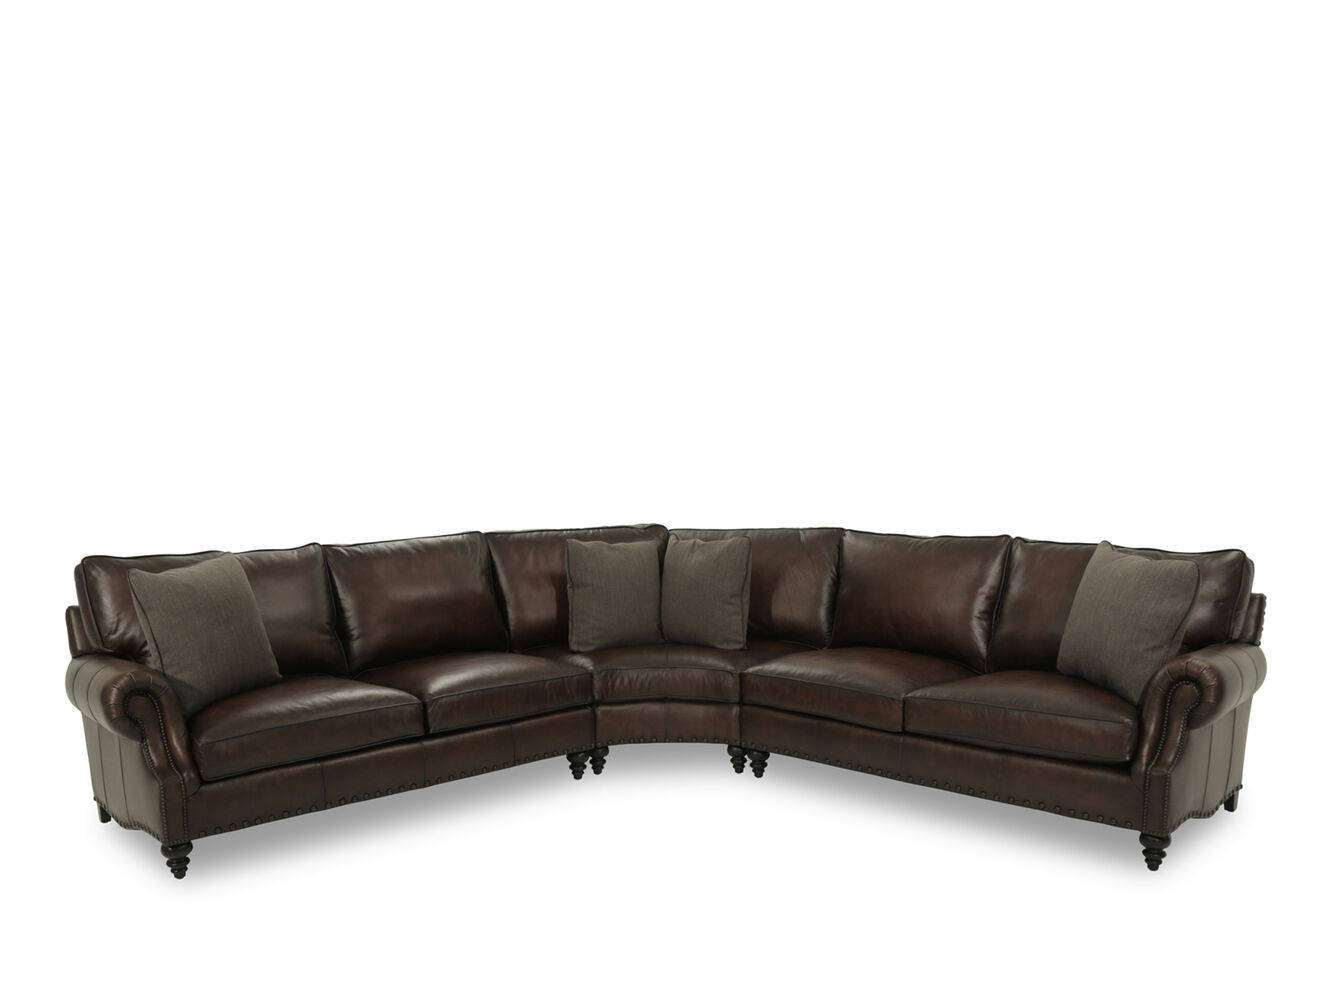 Mathis brothers living room furniture sectional sofas for Sectional sofas mathis brothers